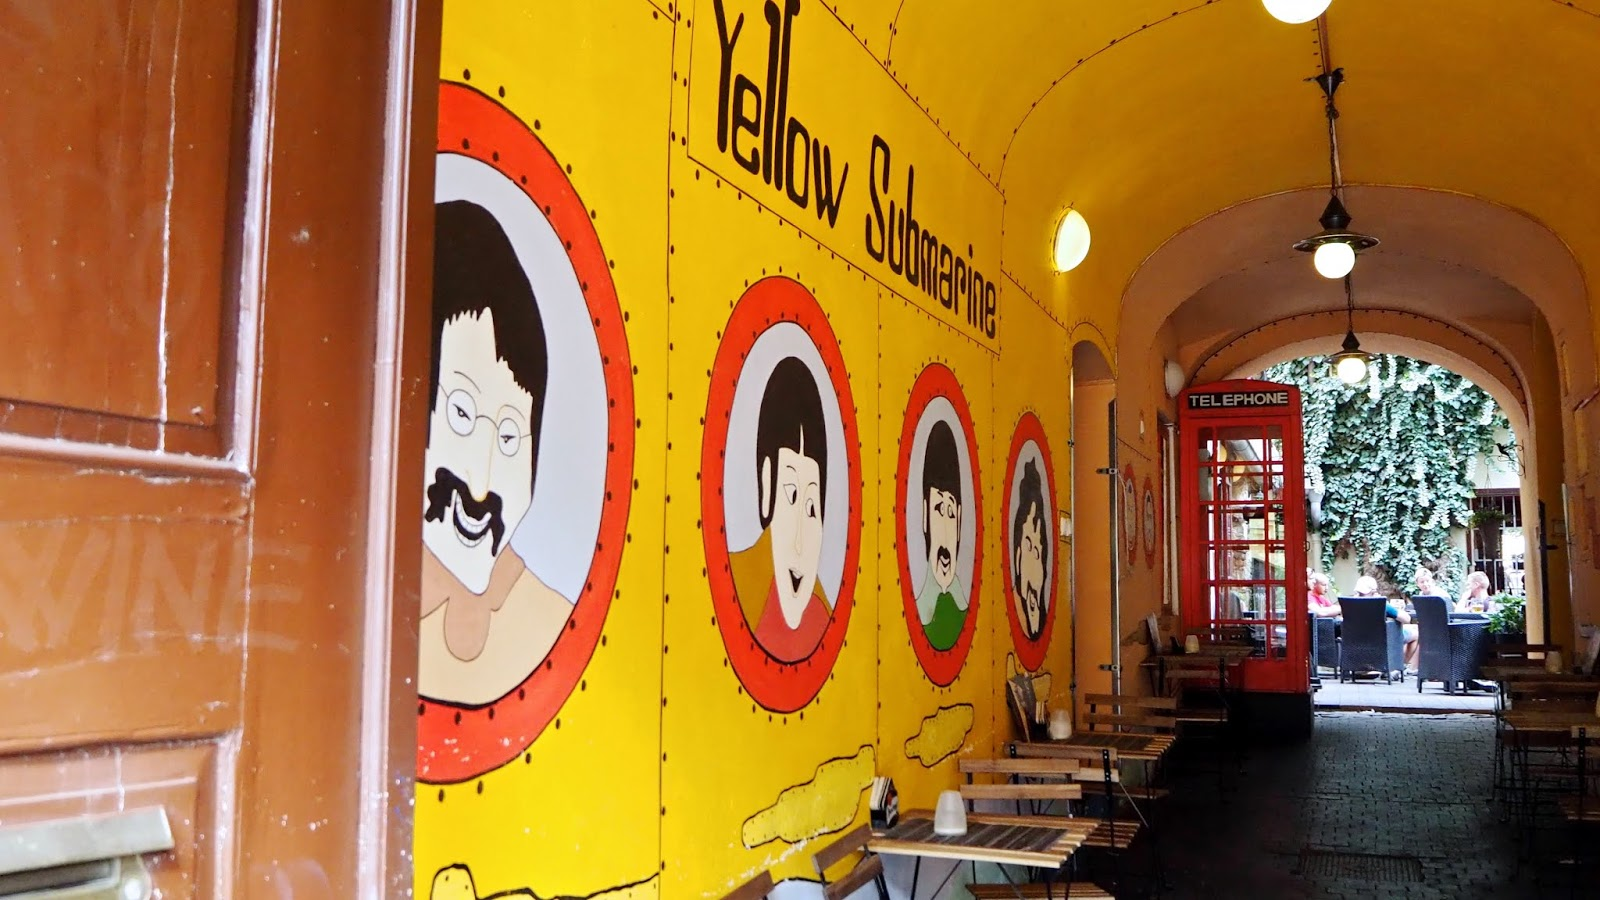 Yellow Submarine wall mural and British red telephone box